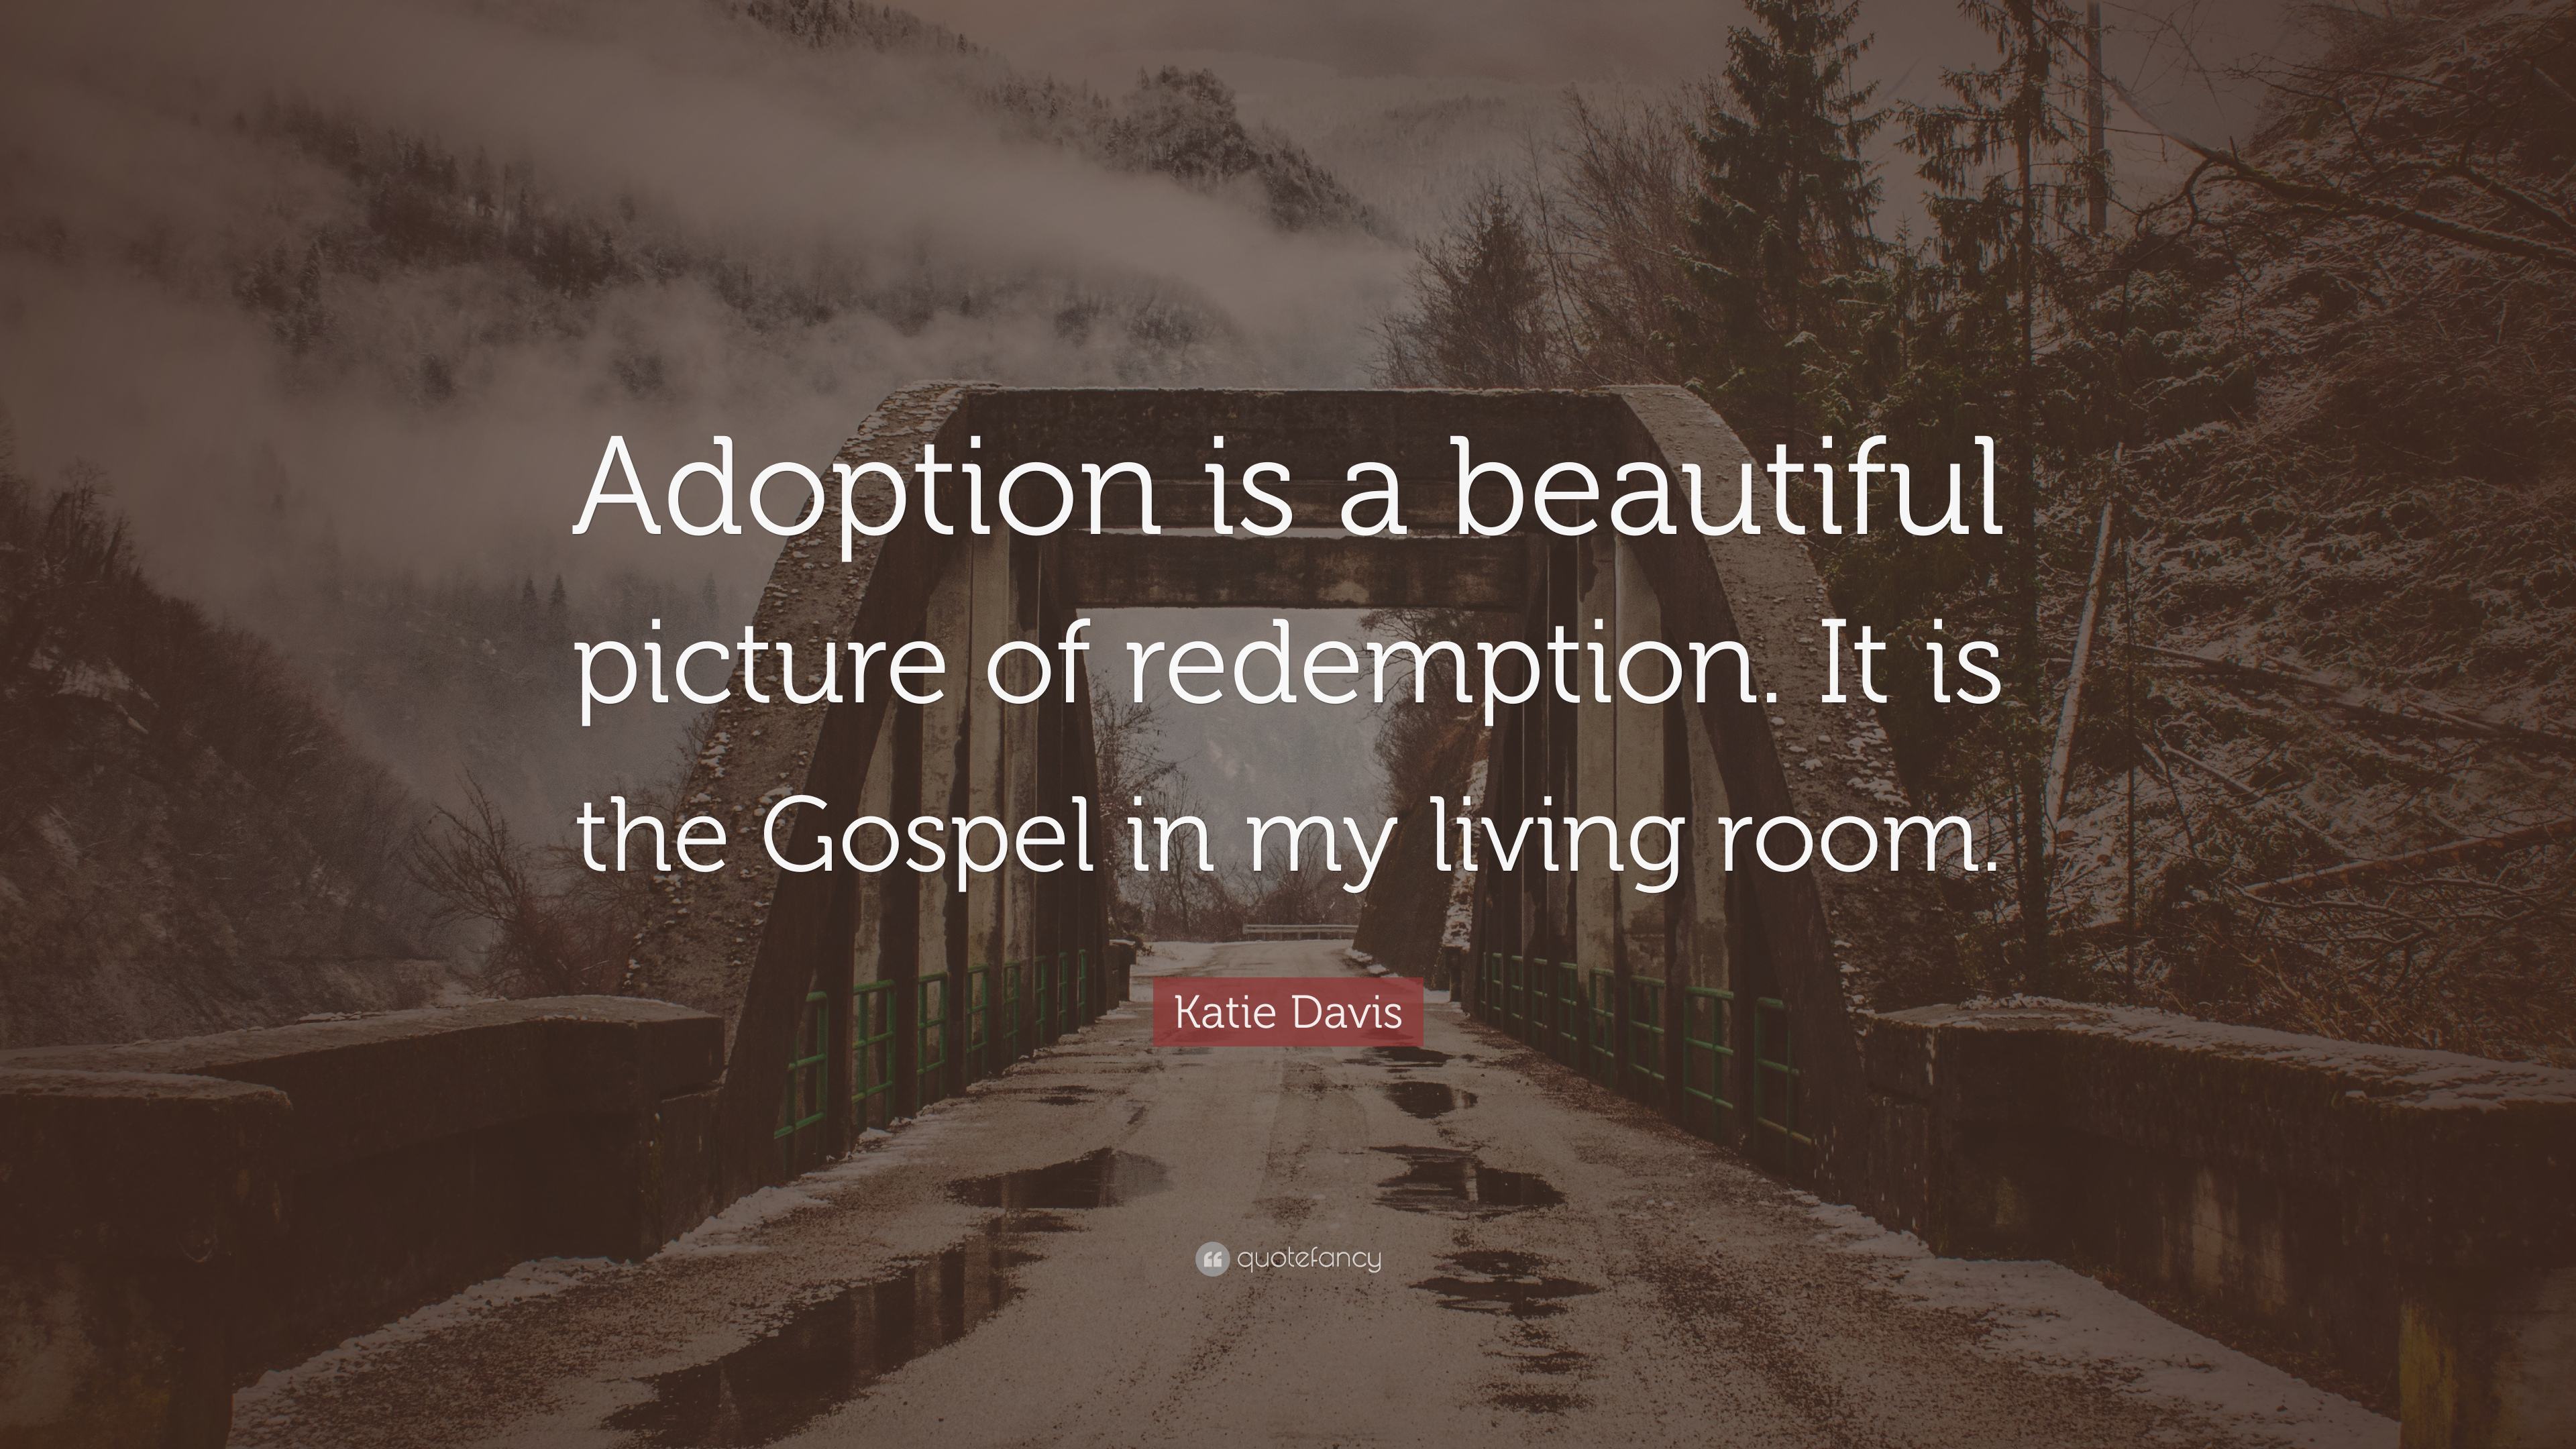 Katie Davis Quote Adoption Is A Beautiful Picture Of Redemption It Is The Gospel In My Living Room 7 Wallpapers Quotefancy